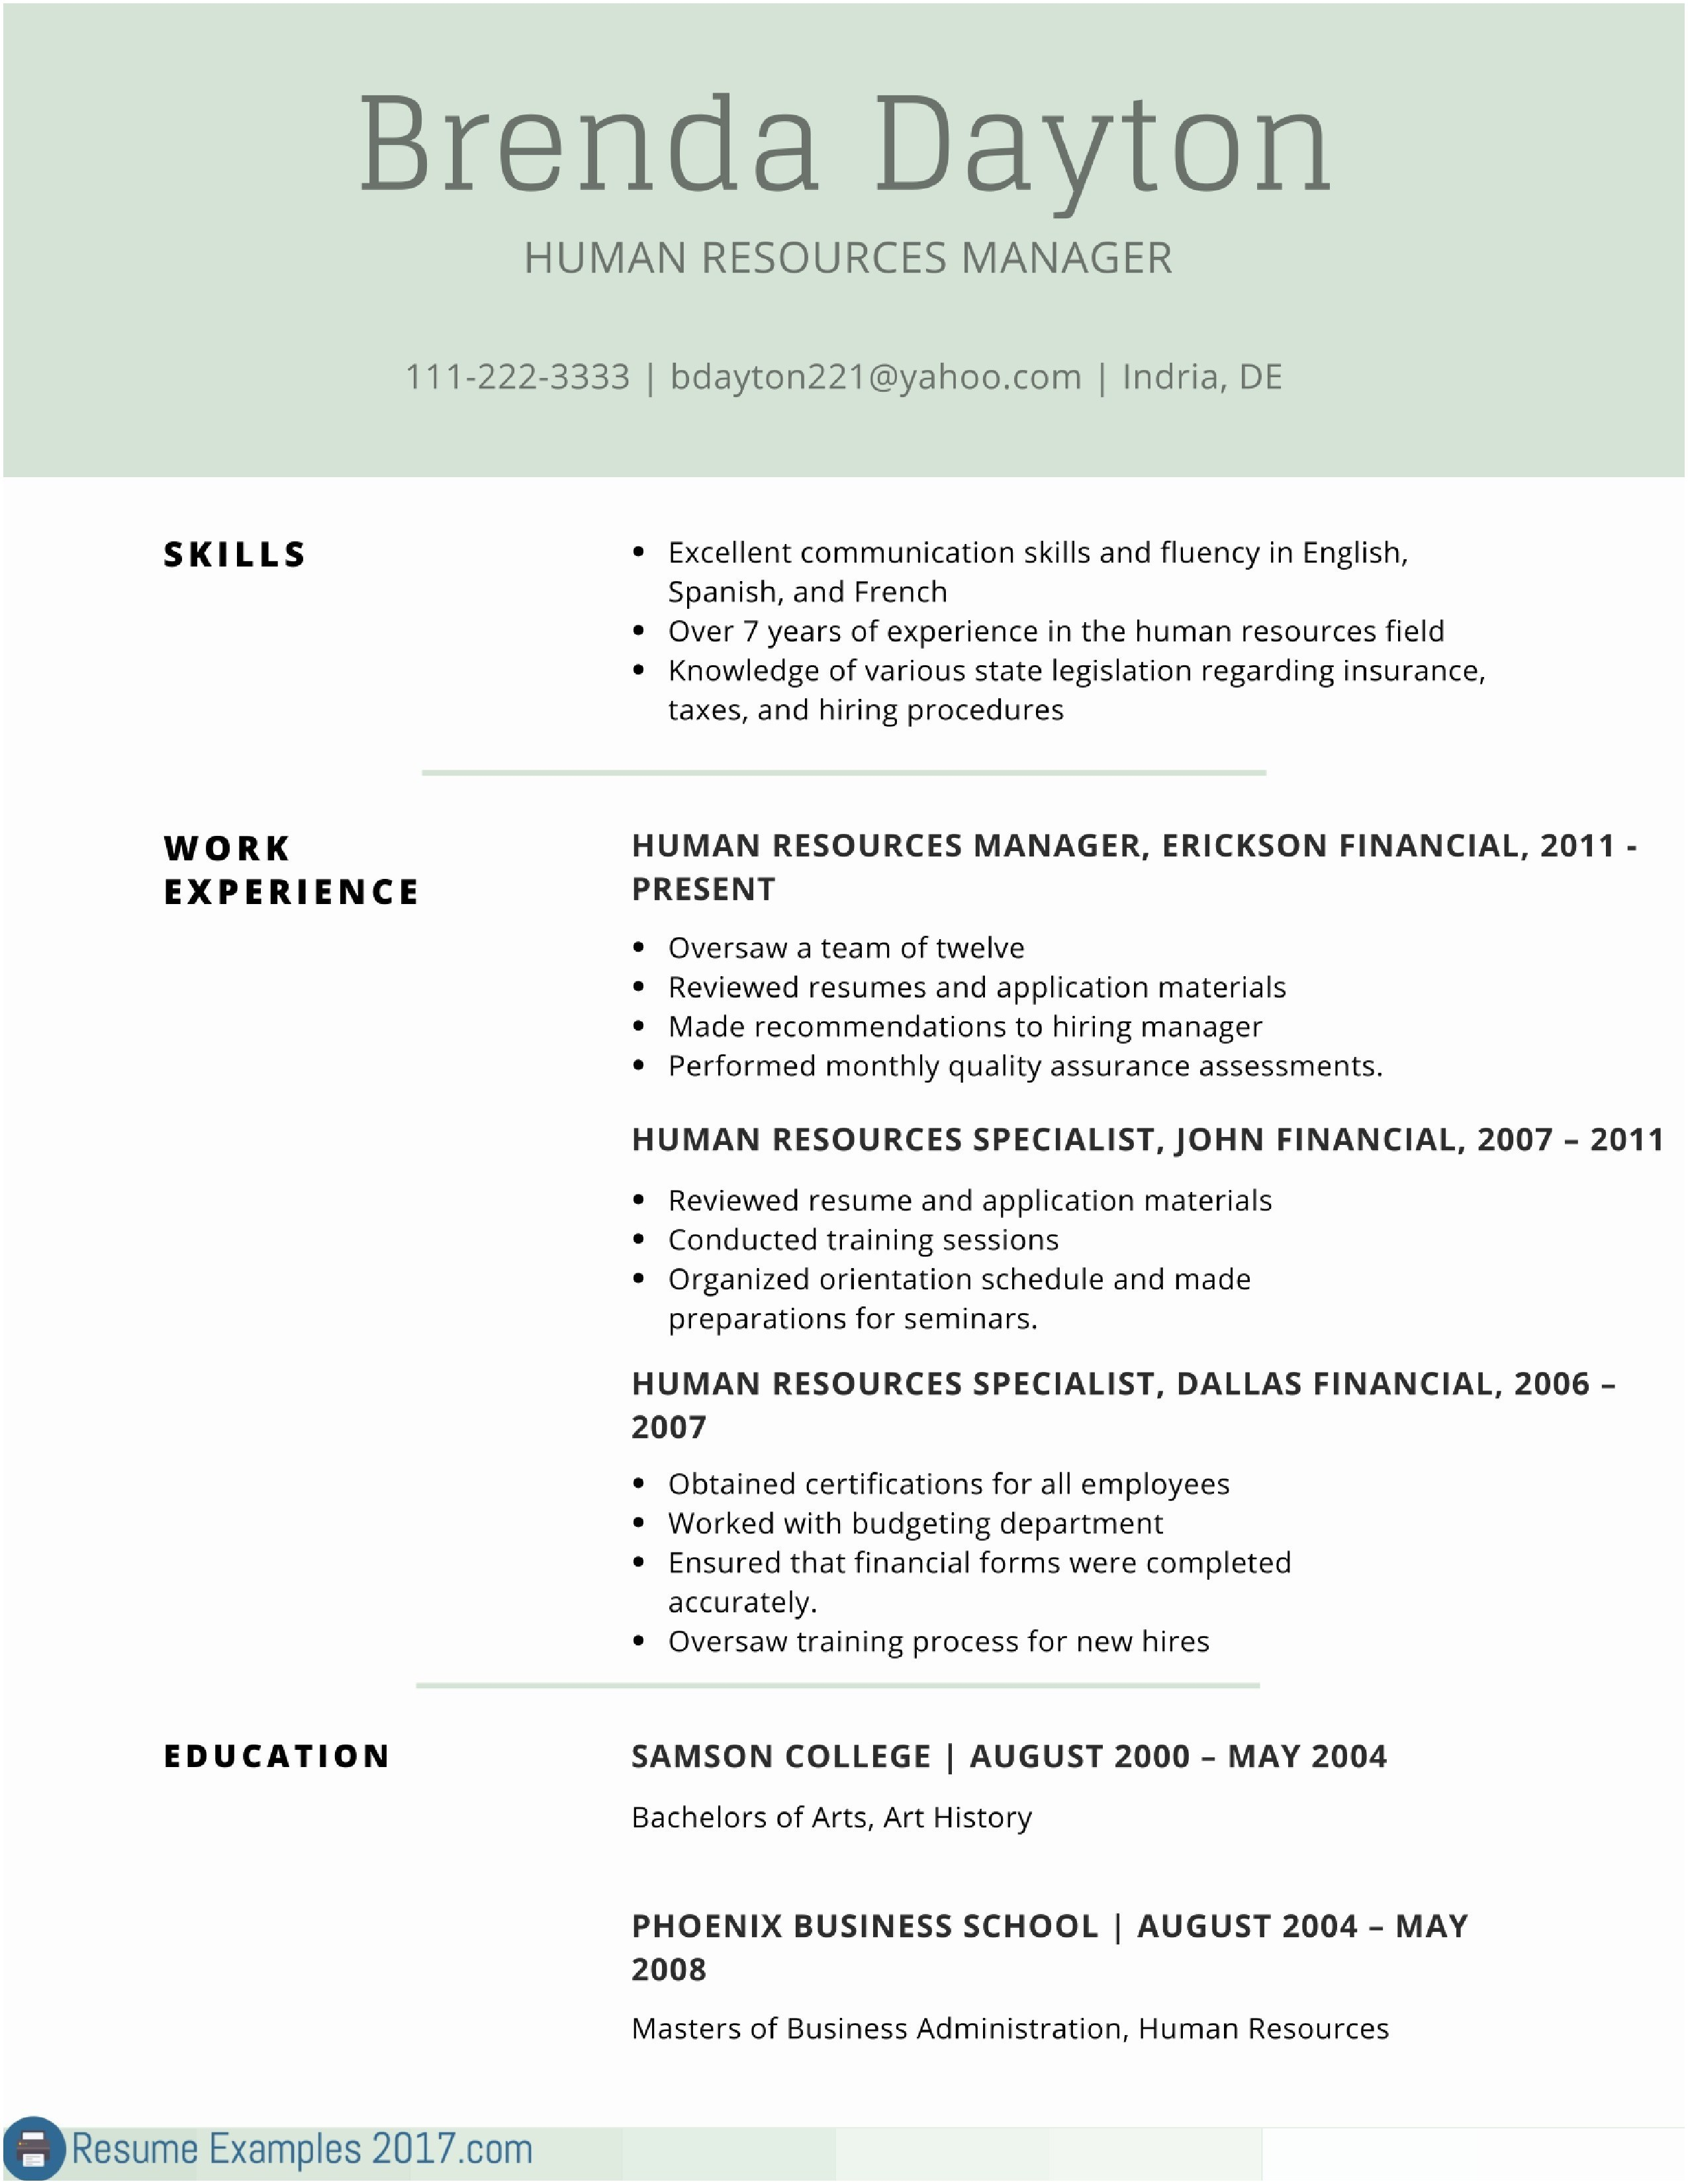 Best Executive Resumes - Finance Executive Resume Samples